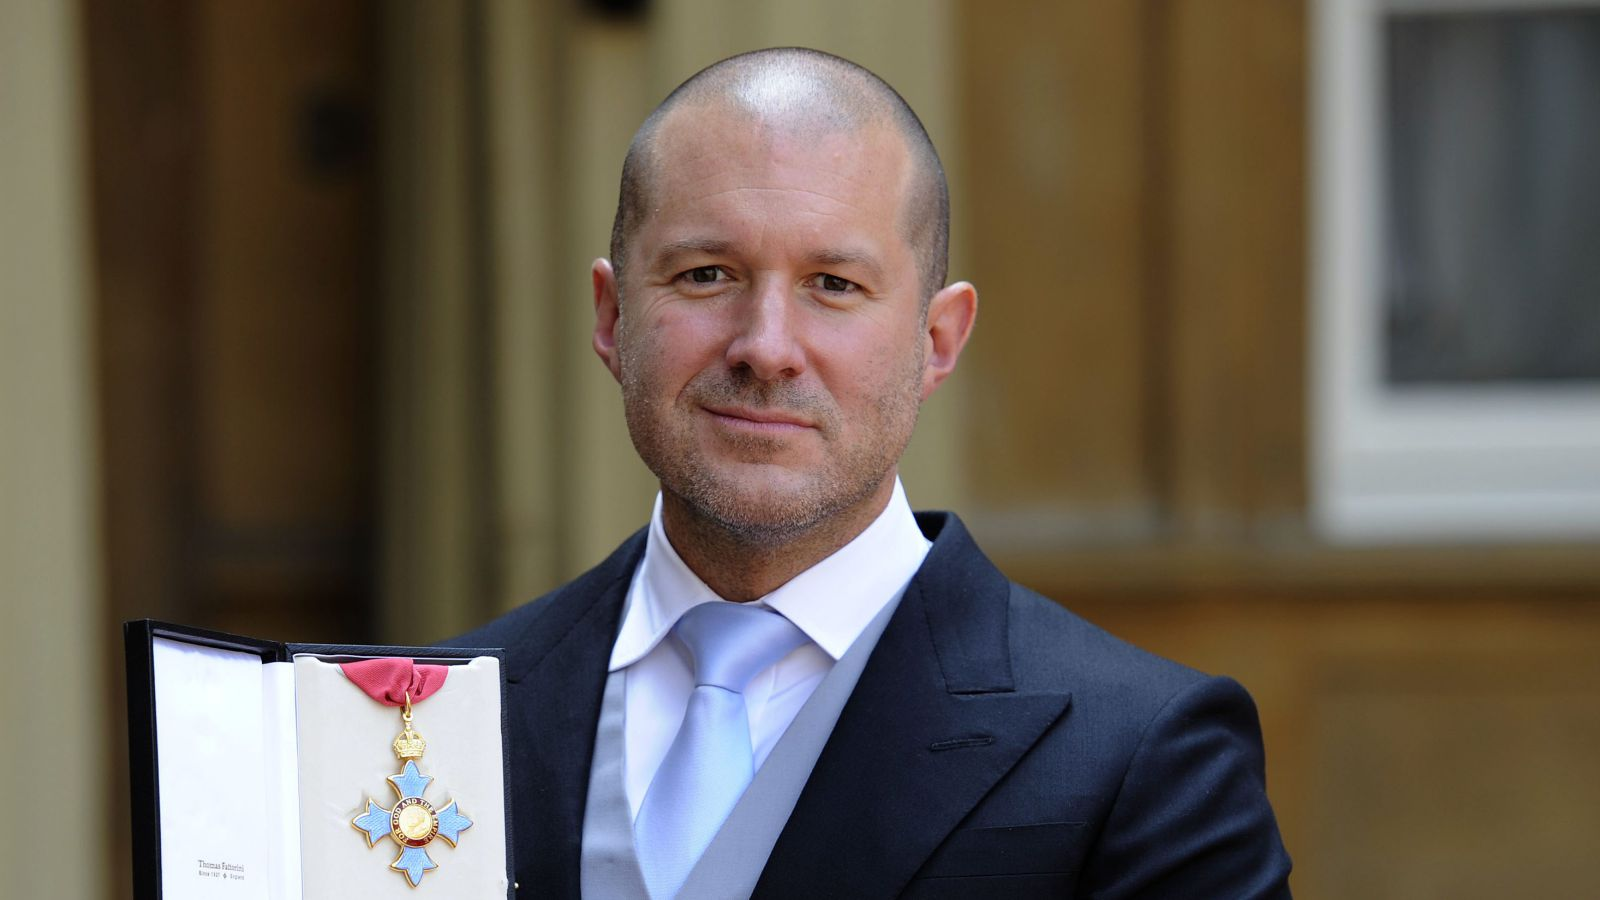 Sir Jony Ive 2nd Person to Be Awarded Stephen Hawking Fellowship